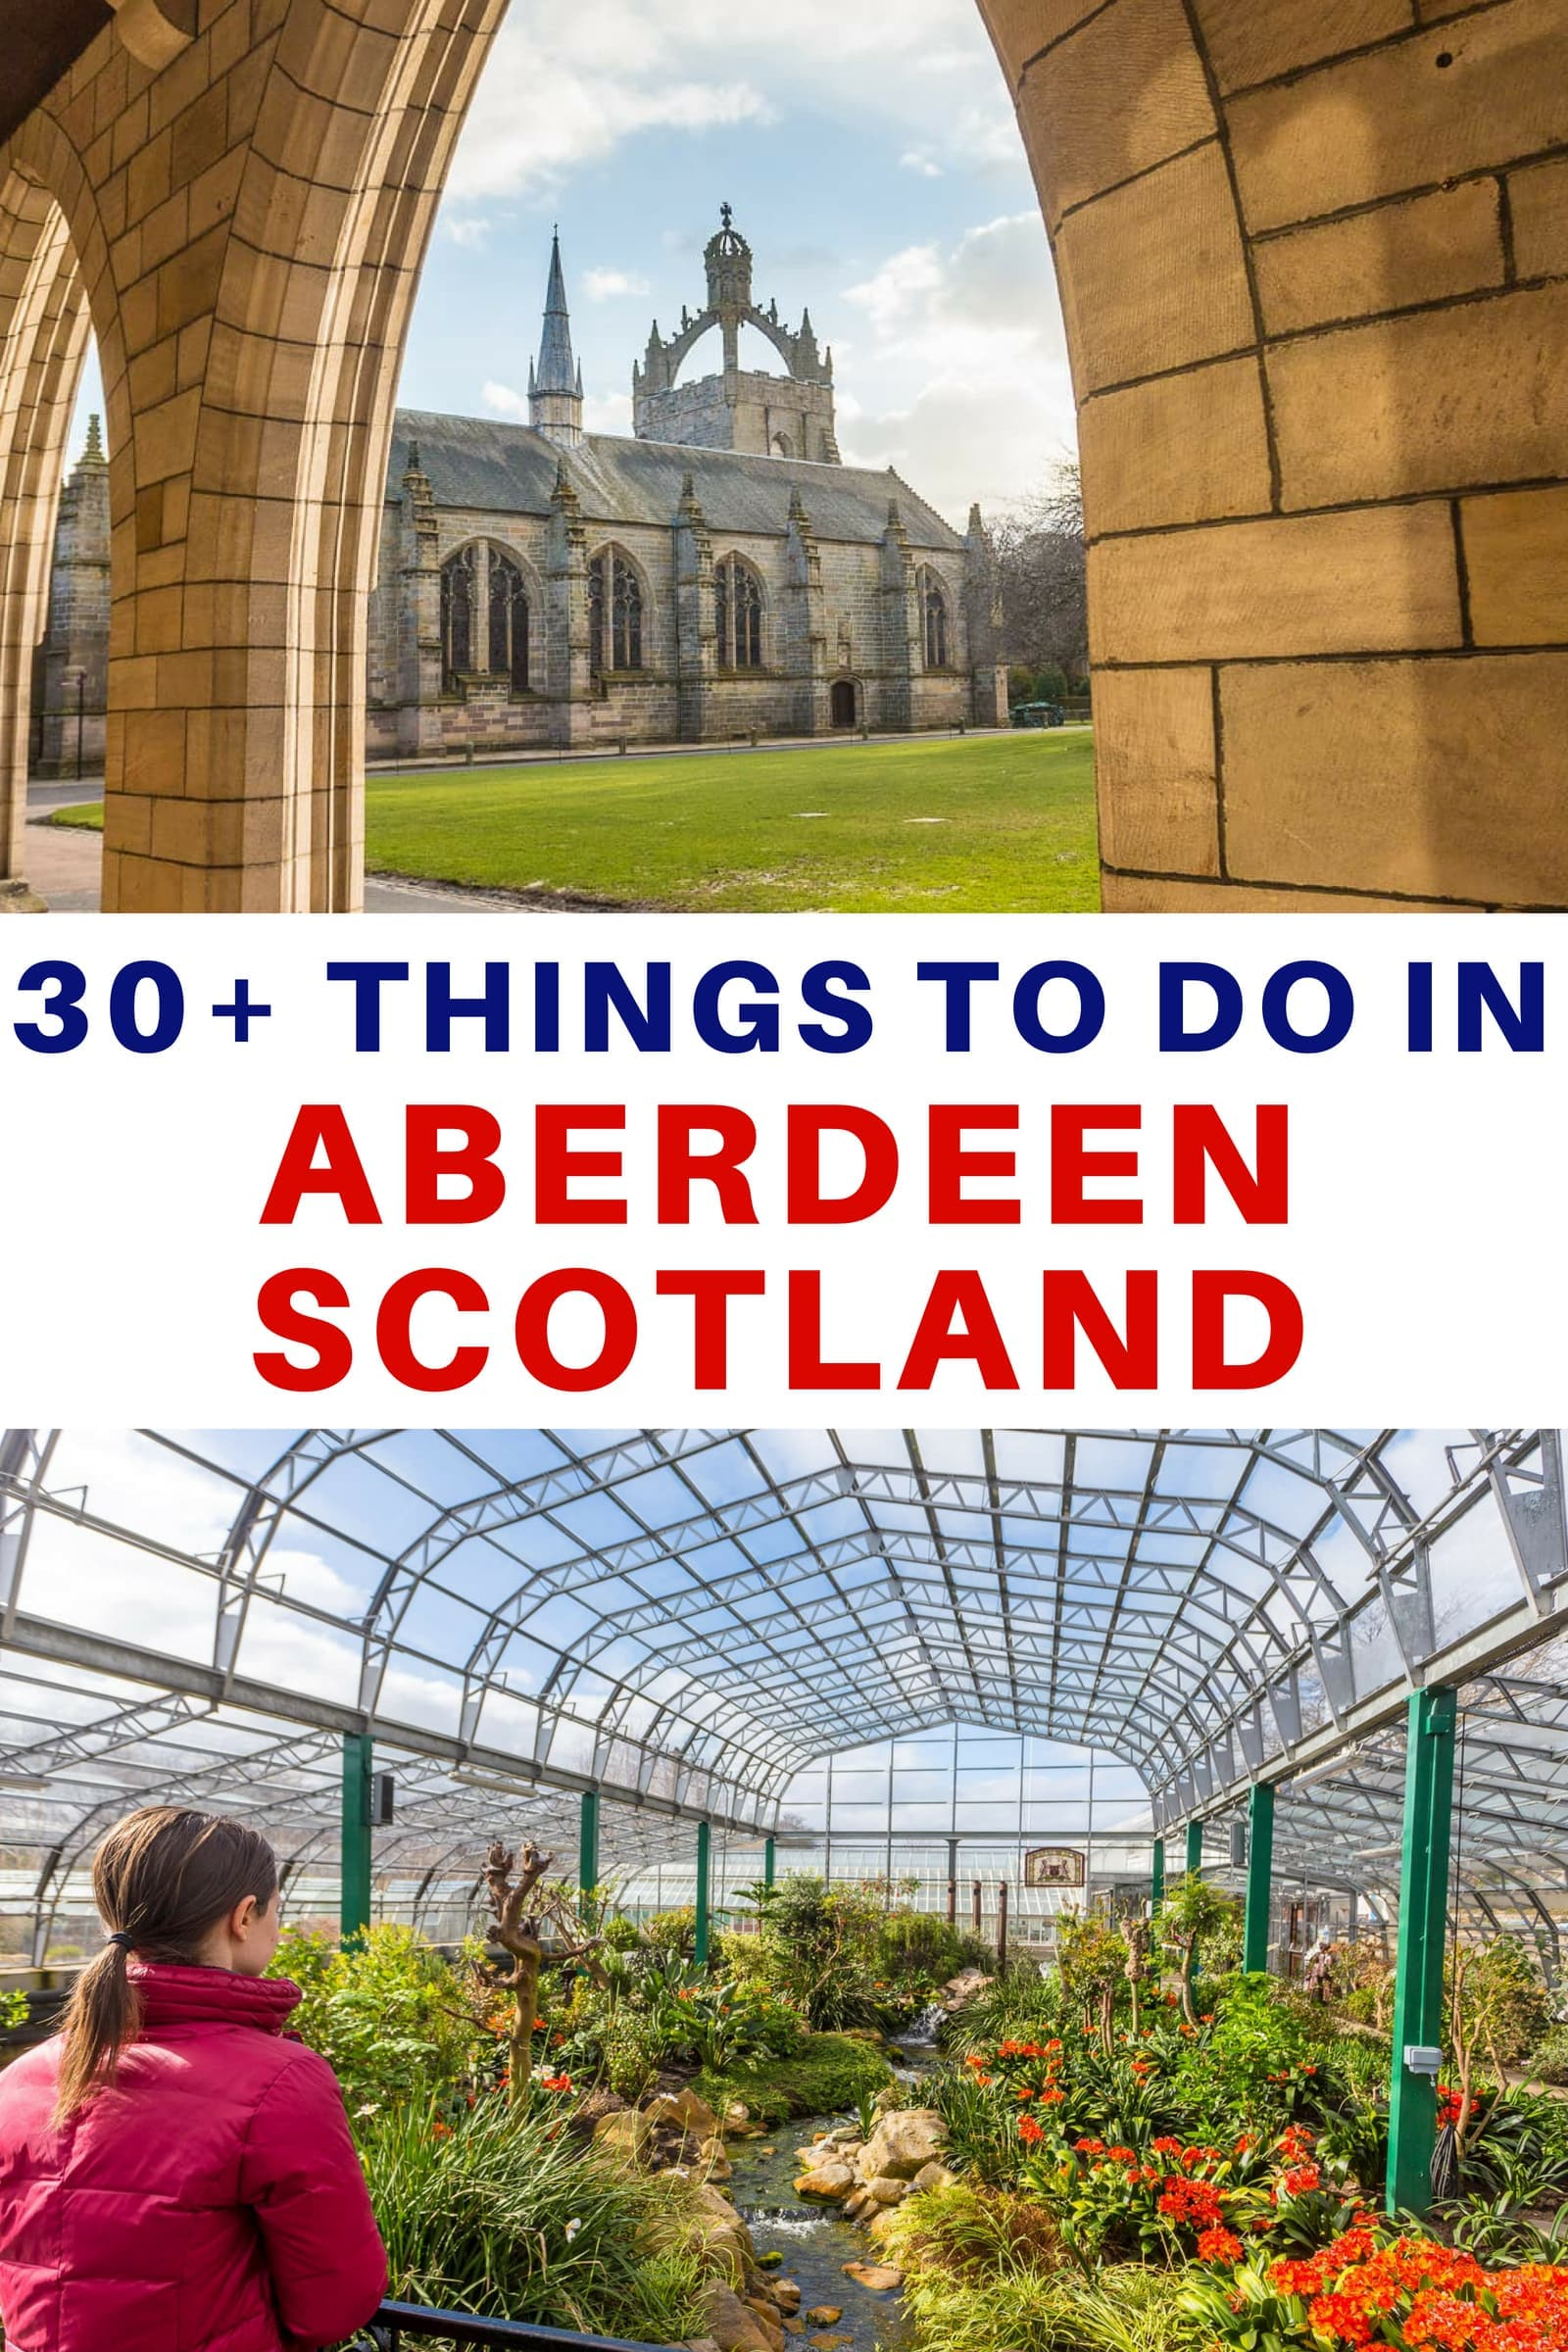 A travel guide to the top things to do in Aberdeen Scotland as well as suggestions on getting around, where to stay, and day trip ideas. Aberdeen has power architecture, beautiful gardens, charming historical districts, interesting museums, good restaurants, internationally known golf courses, fun festivals, and even a beach! Aberdeenshire is also home to whisky distilleries, dozens of castles, and the Cairngorms National Park. #Aberdeen #Aberdeenshire #Aberdeentravel #Scotland #travel